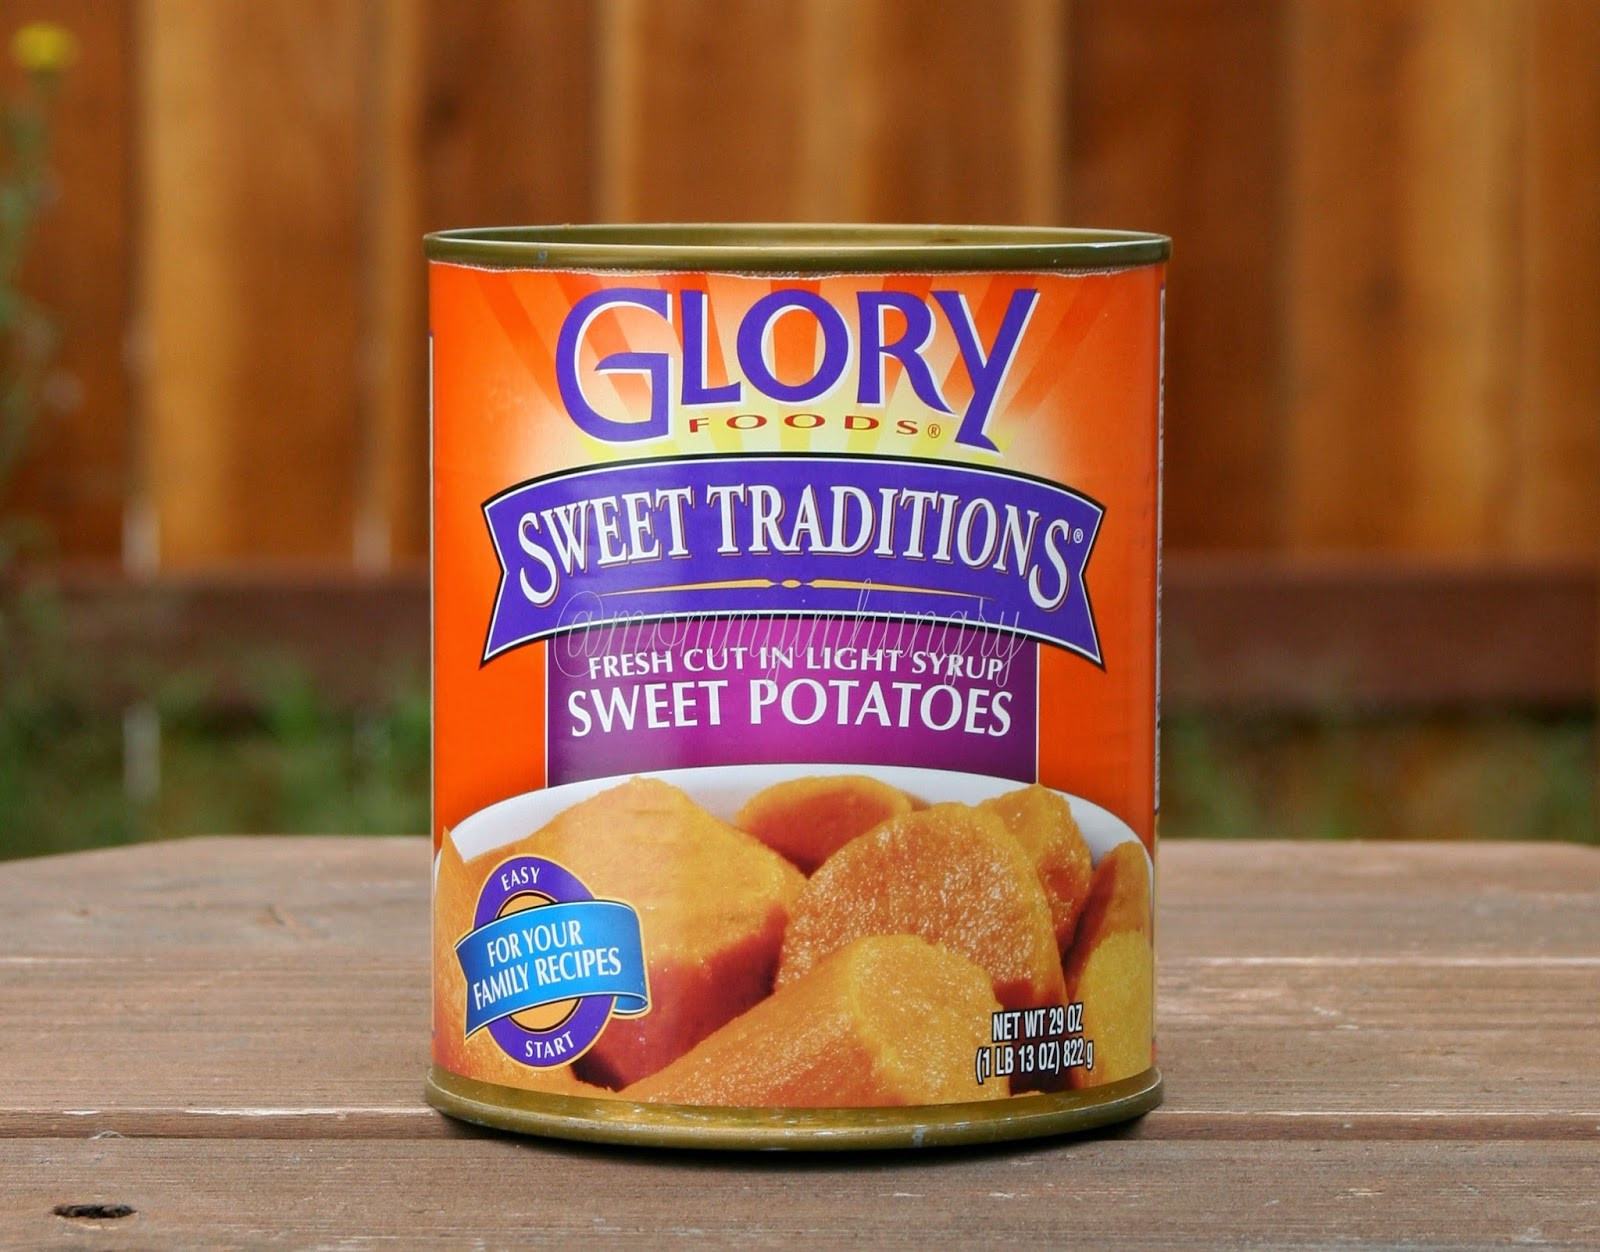 Canned Sweet Potato  MIH Product Reviews & Giveaways Cans Get You Cooking